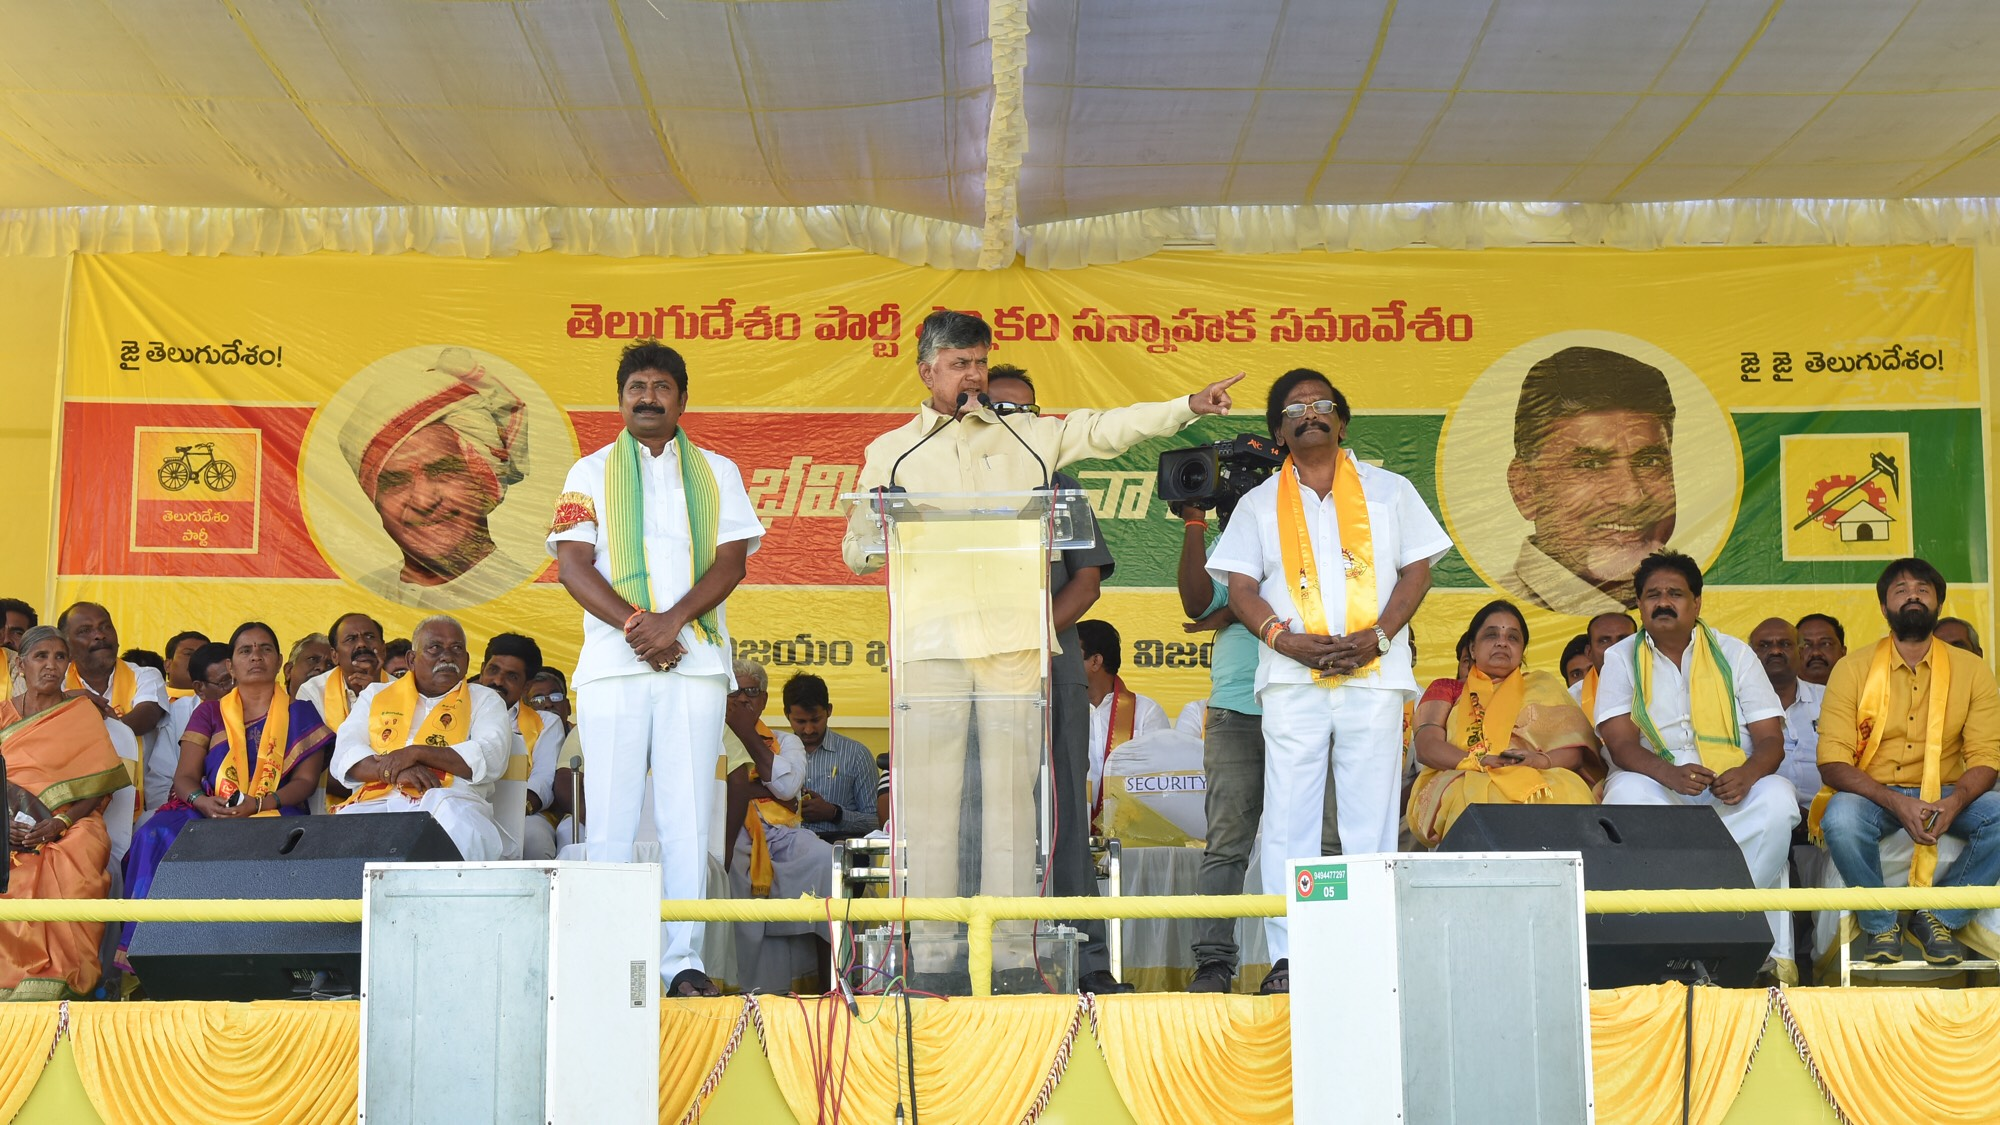 TDP – Telugu Desam party